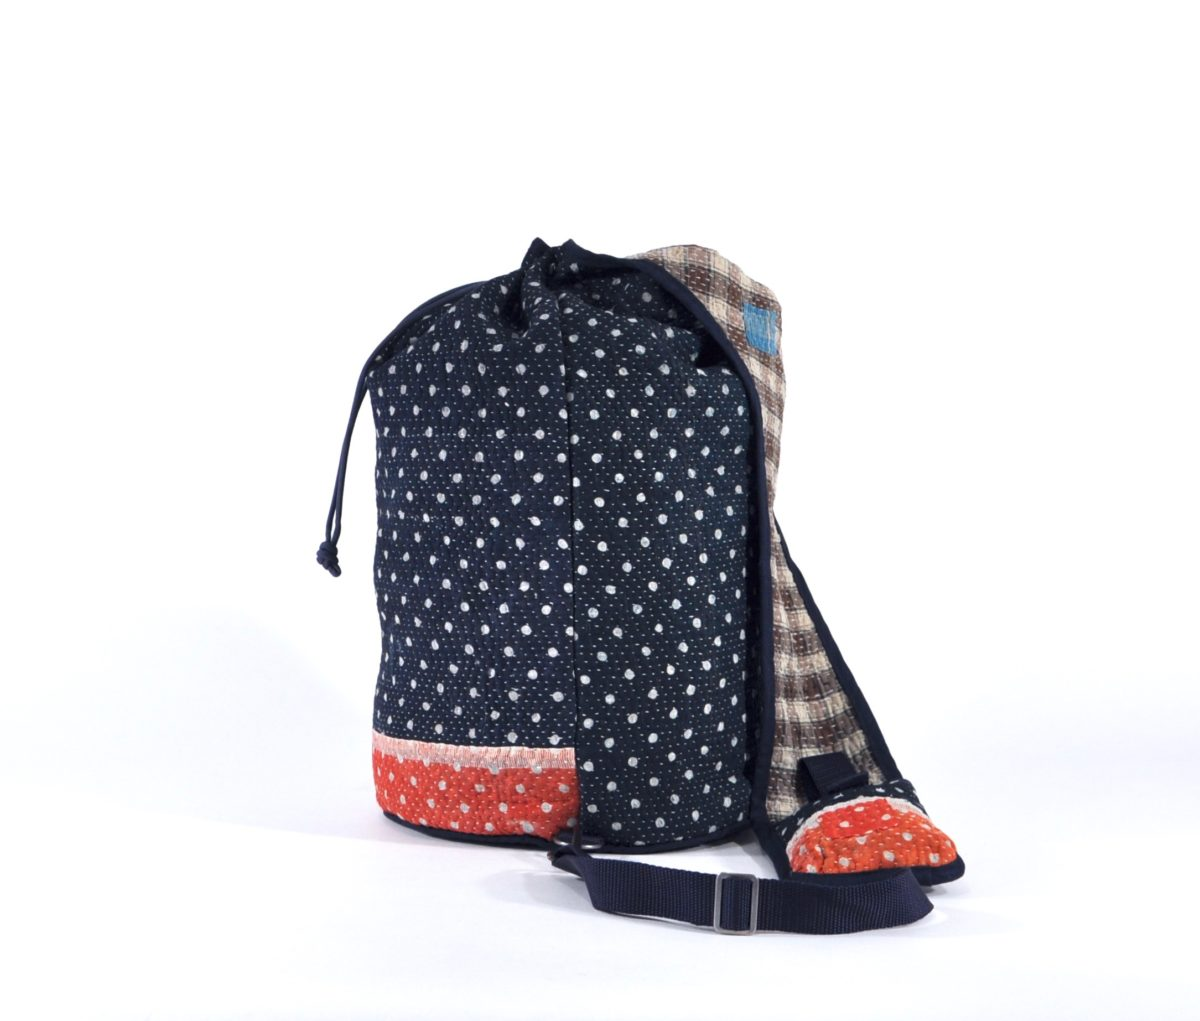 YESNESS Navy w: White Polka Dots & Red Band 6